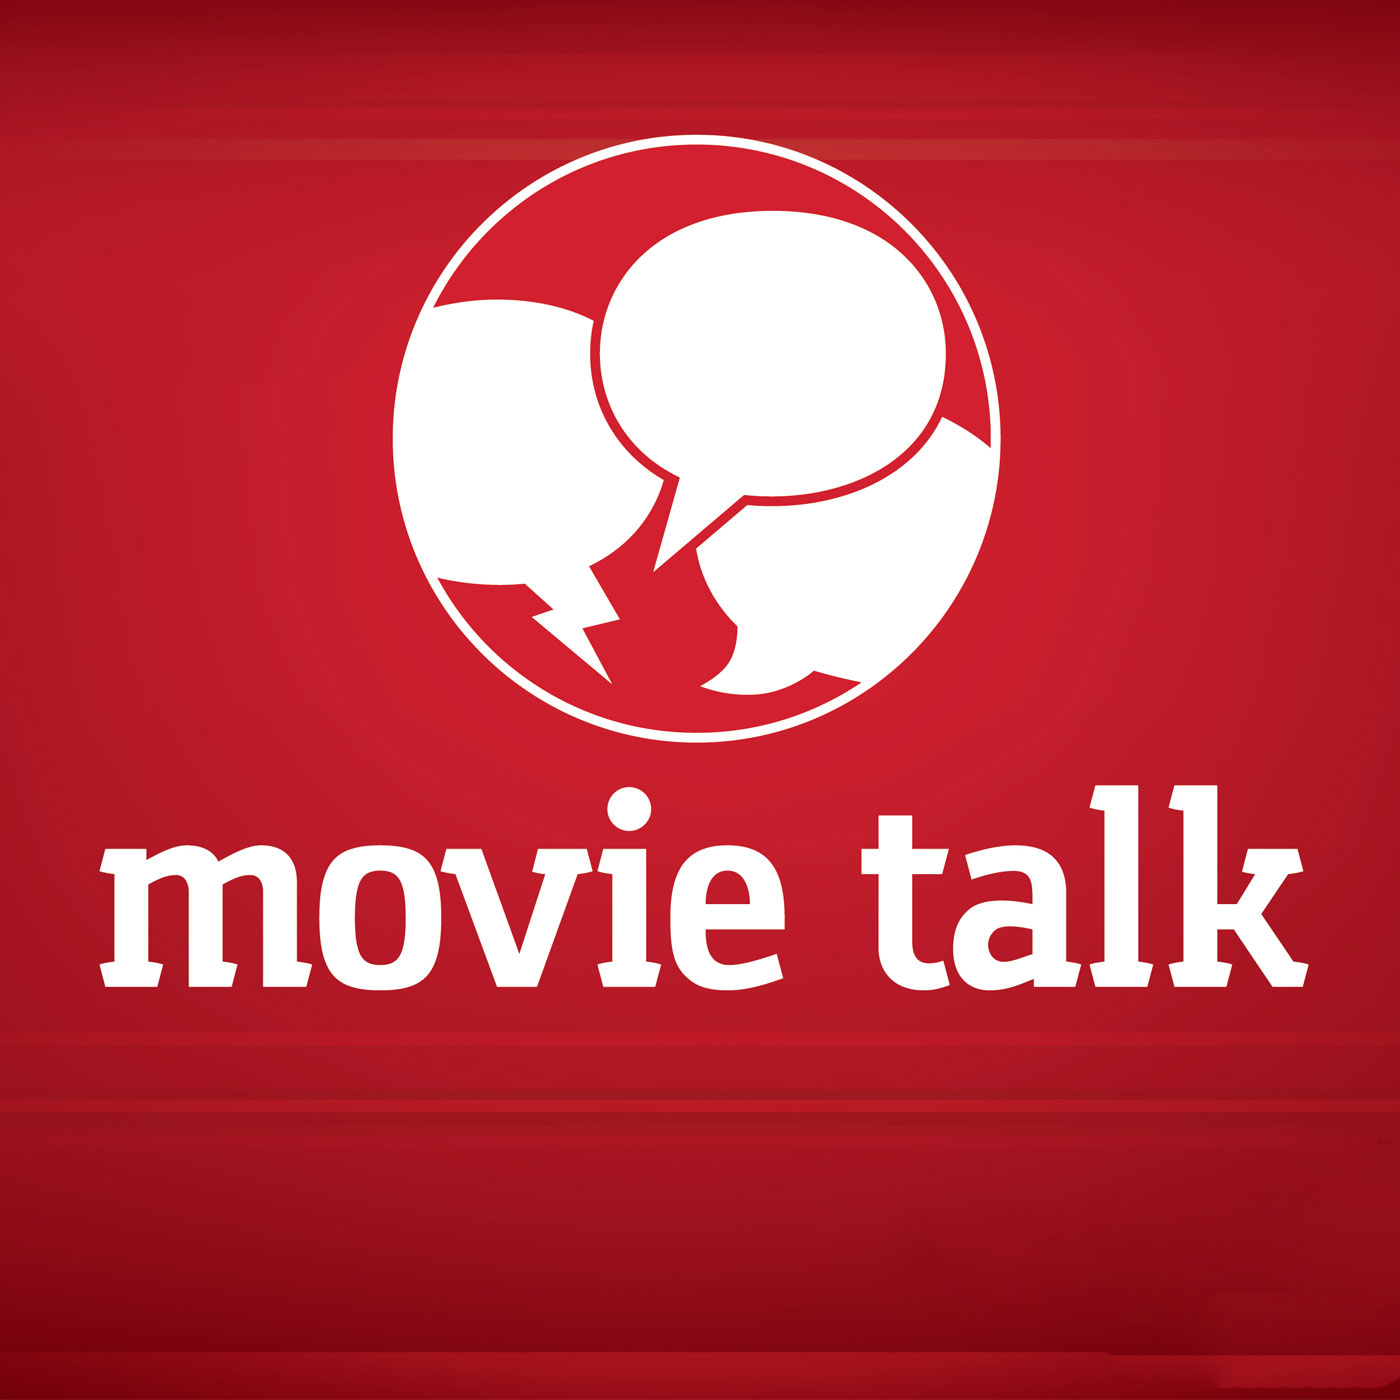 AMC Movie Talk - First Look At GHOSTBUSTERS Reboot, Sony and Paramount Skipping Comic Con